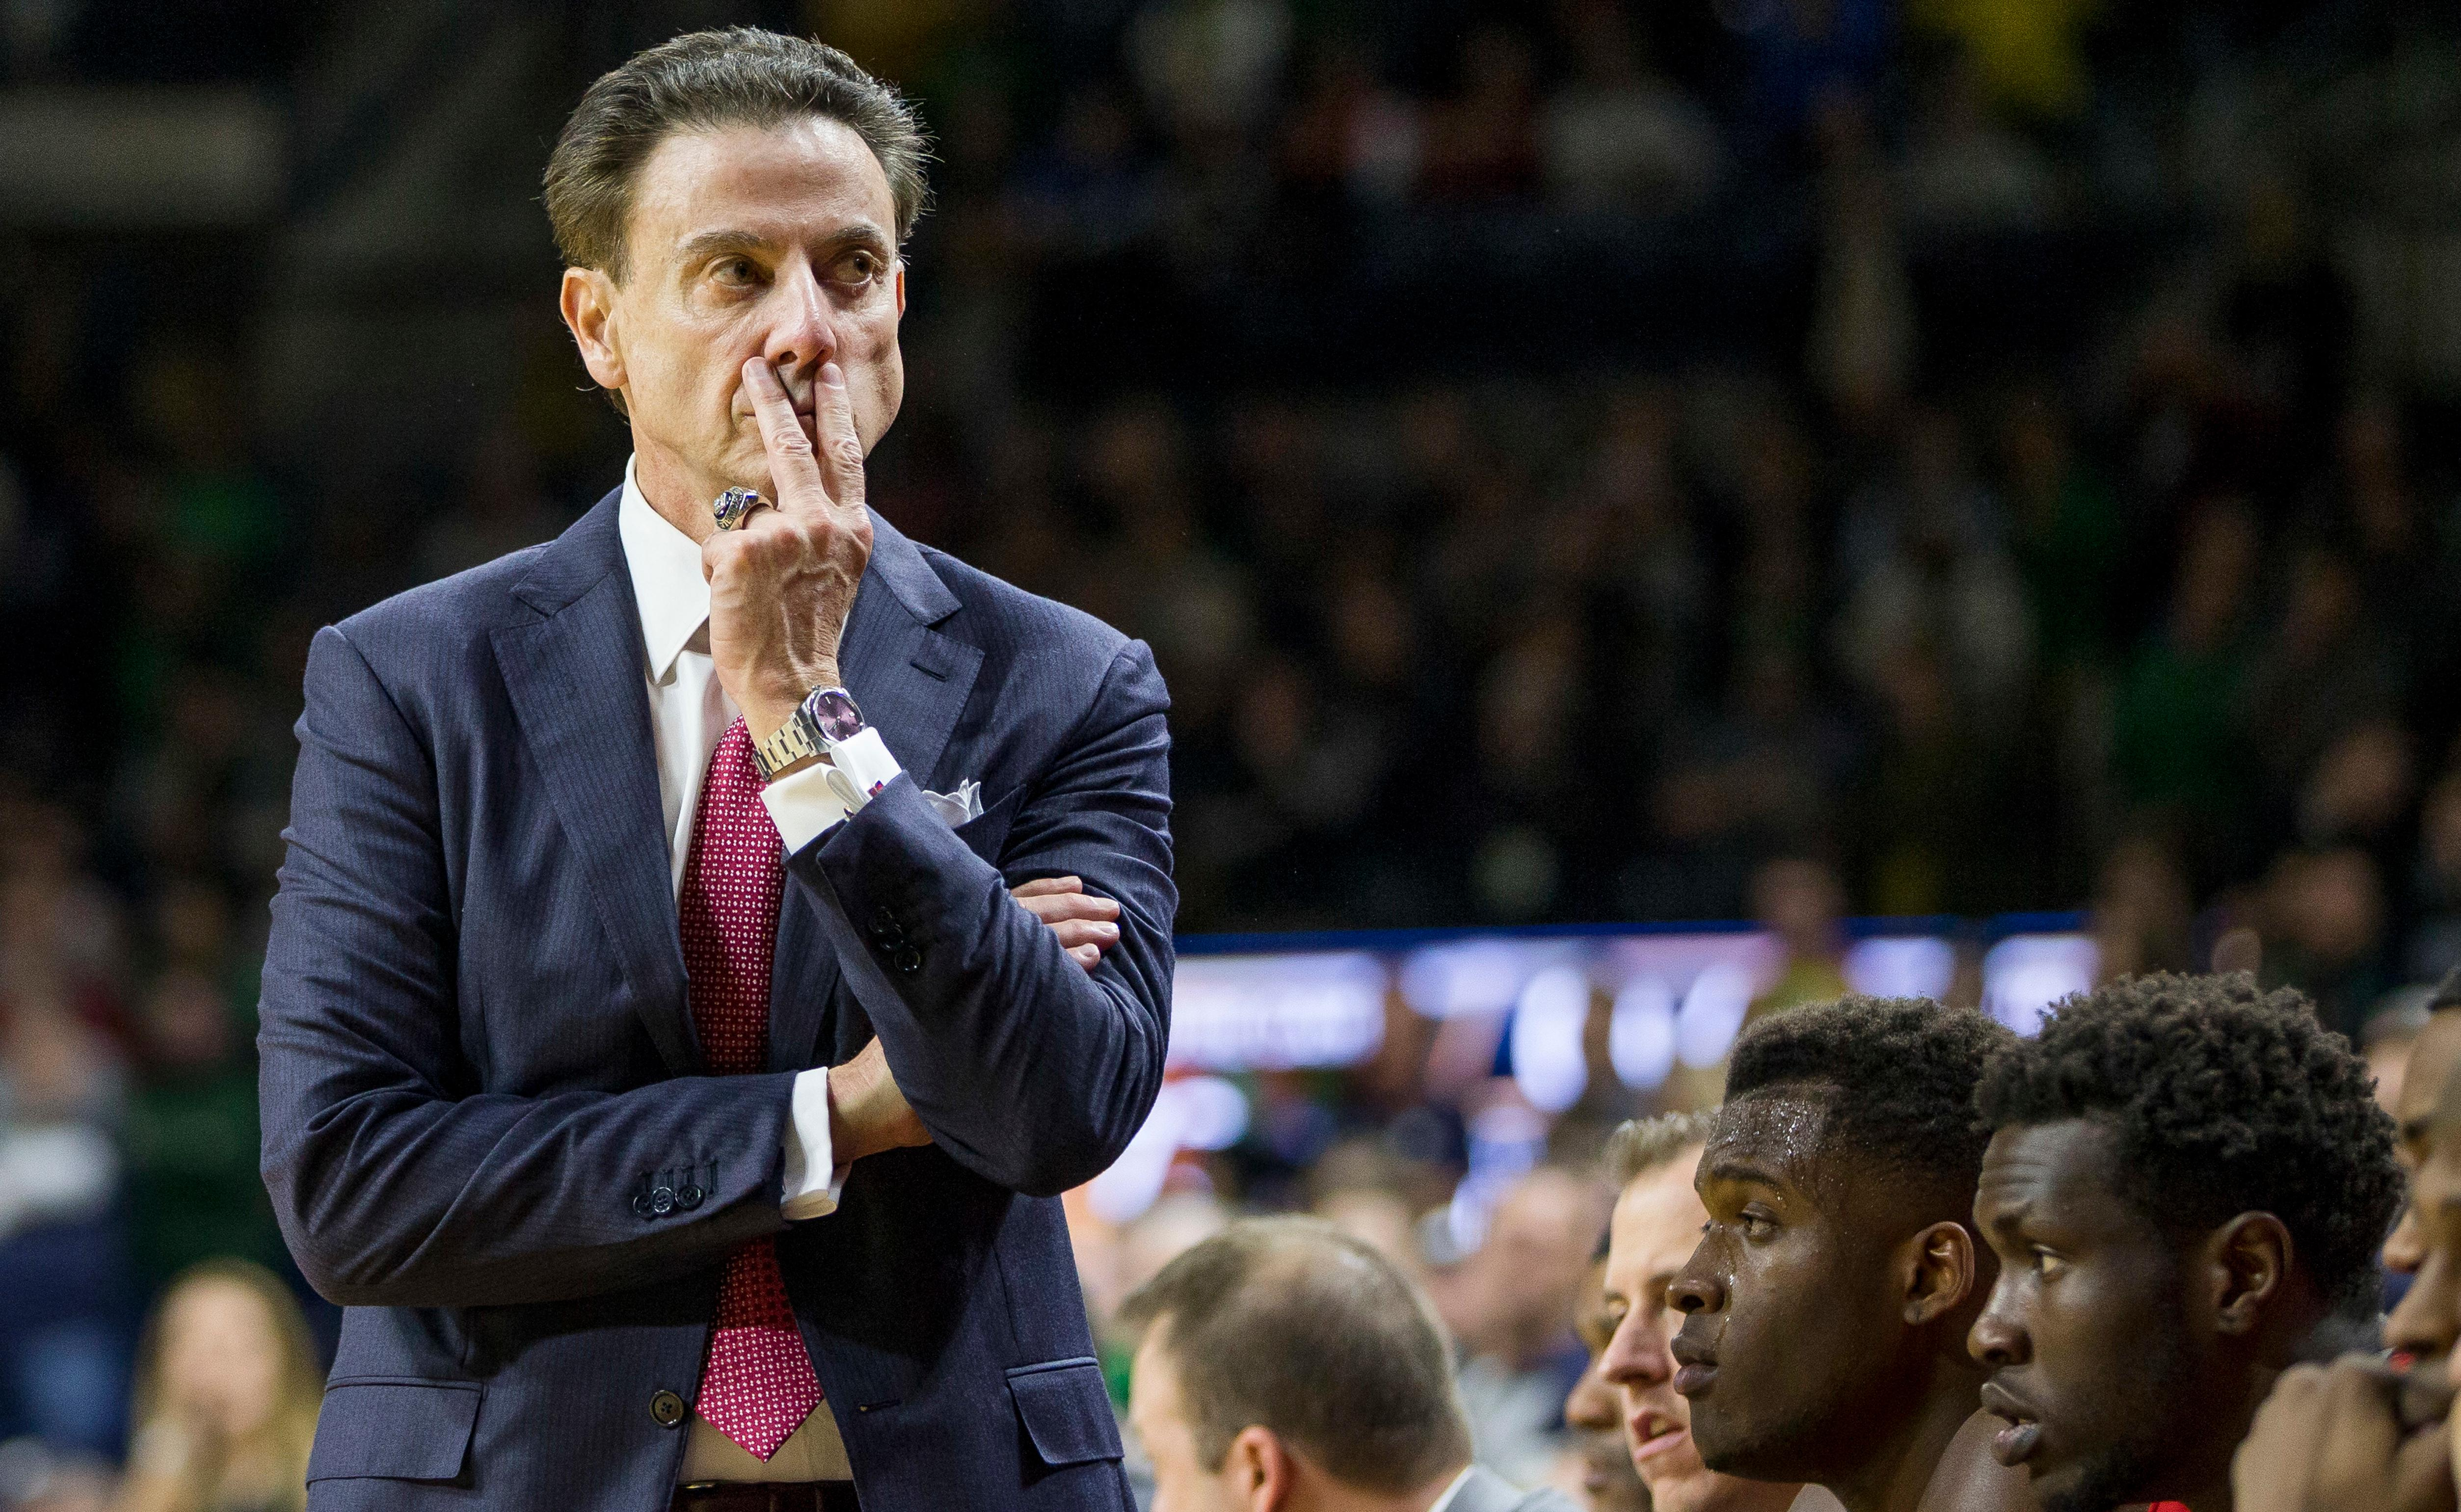 FILE - In this Jan. 4, 2017, file photo, Louisville head coach Rick Pitino looks on as his team falls behind late in the second half of an NCAA college basketball game against Notre Dame in South Bend, Ind. The NCAA suspended Pitino, Thursday, June 15, 2017, for five ACC games following sex scandal investigation. A former men's basketball staffer is alleged to have hired strippers to entertain players and recruits.   (AP Photo/Robert Franklin, File)